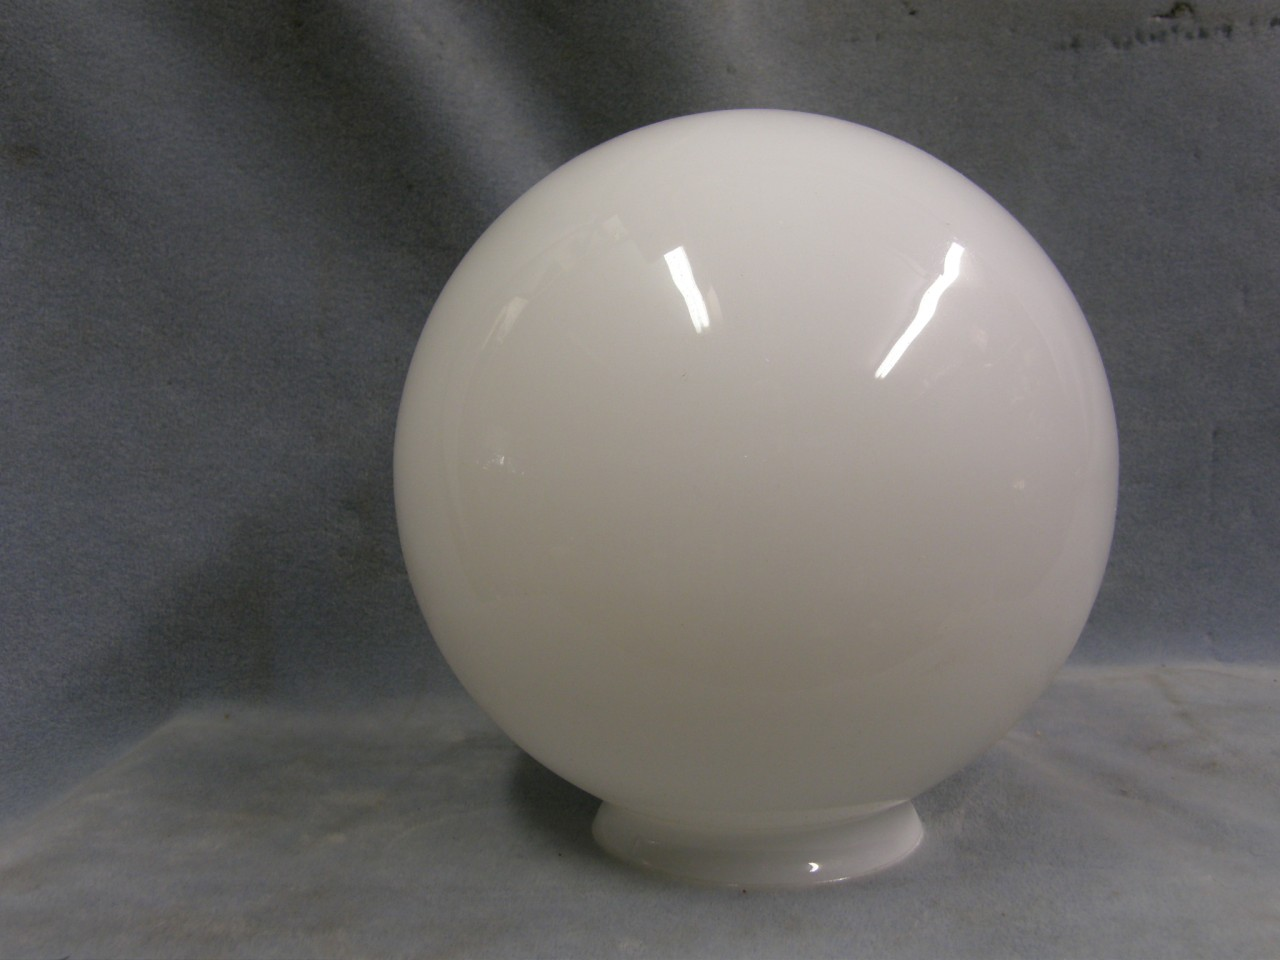 milkglass white lamp shade globe replacement light spheres ball ebay. Black Bedroom Furniture Sets. Home Design Ideas